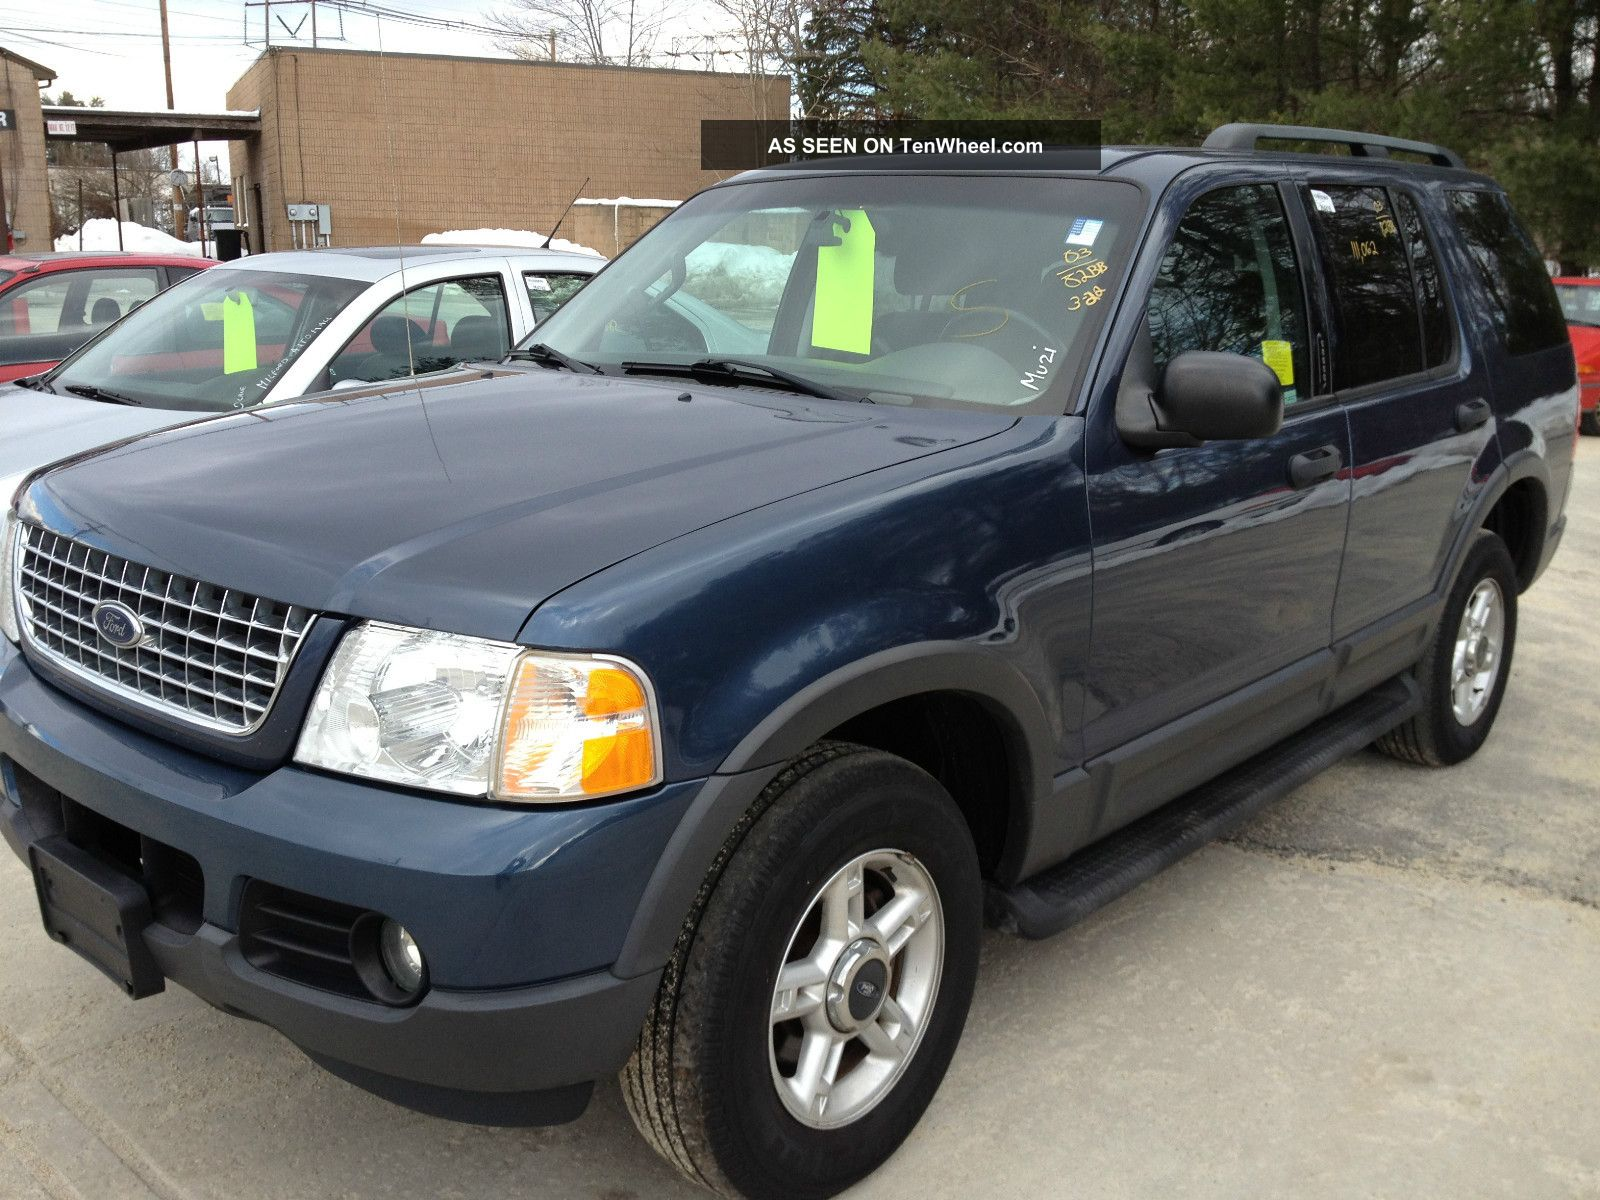 Ford Explorer 4.0 2003 photo - 4